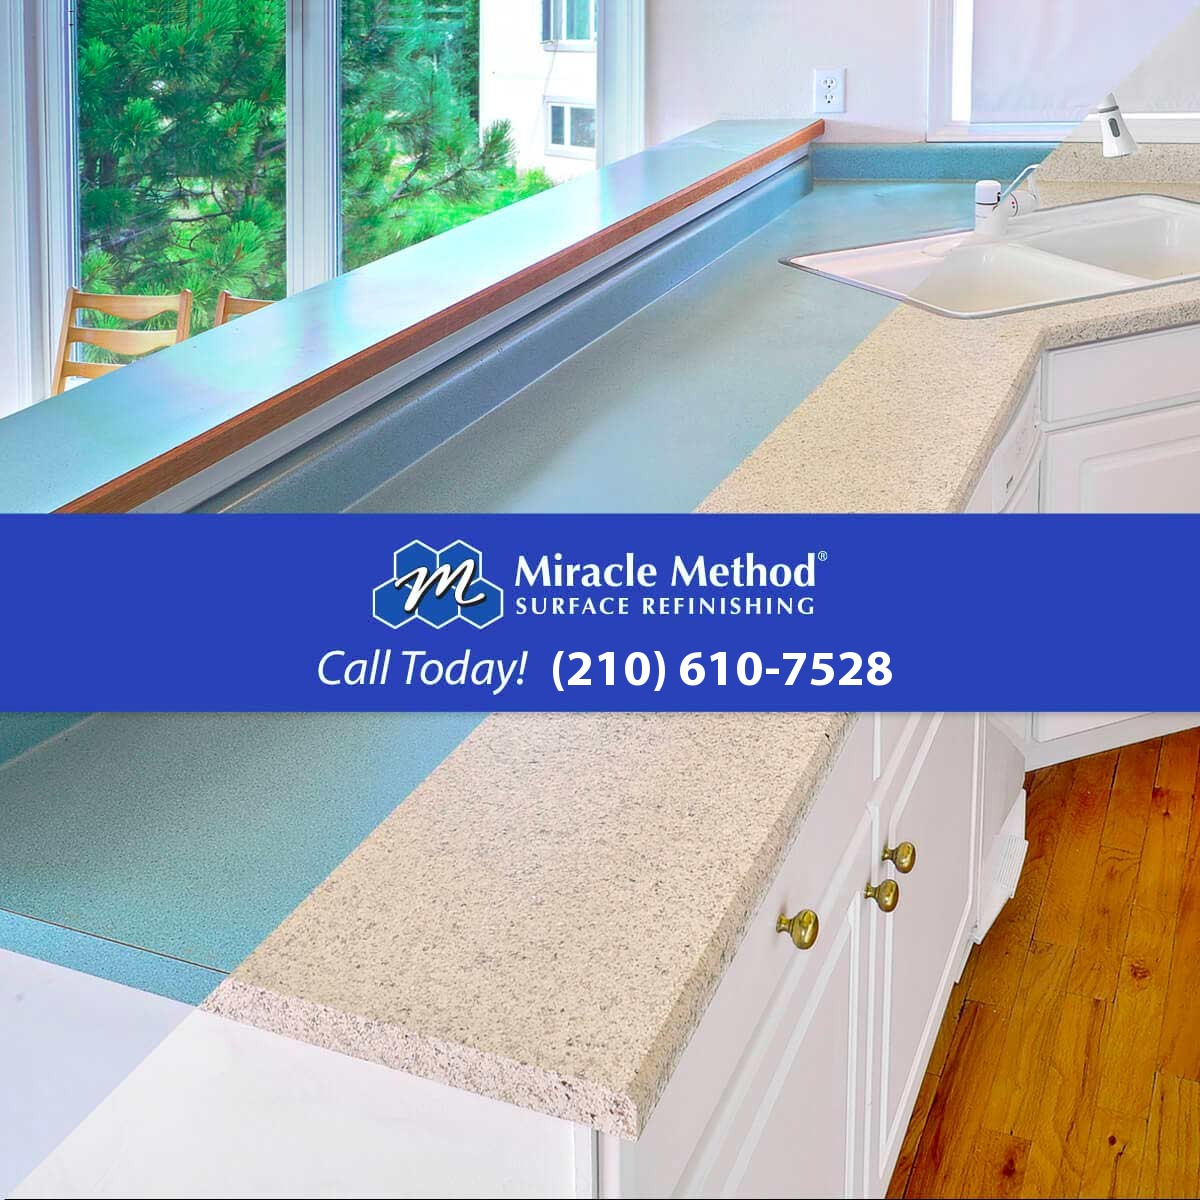 San Antonio, TX Surface Refinishing U0026 Repair | Miracle Method Of San Antonio  North